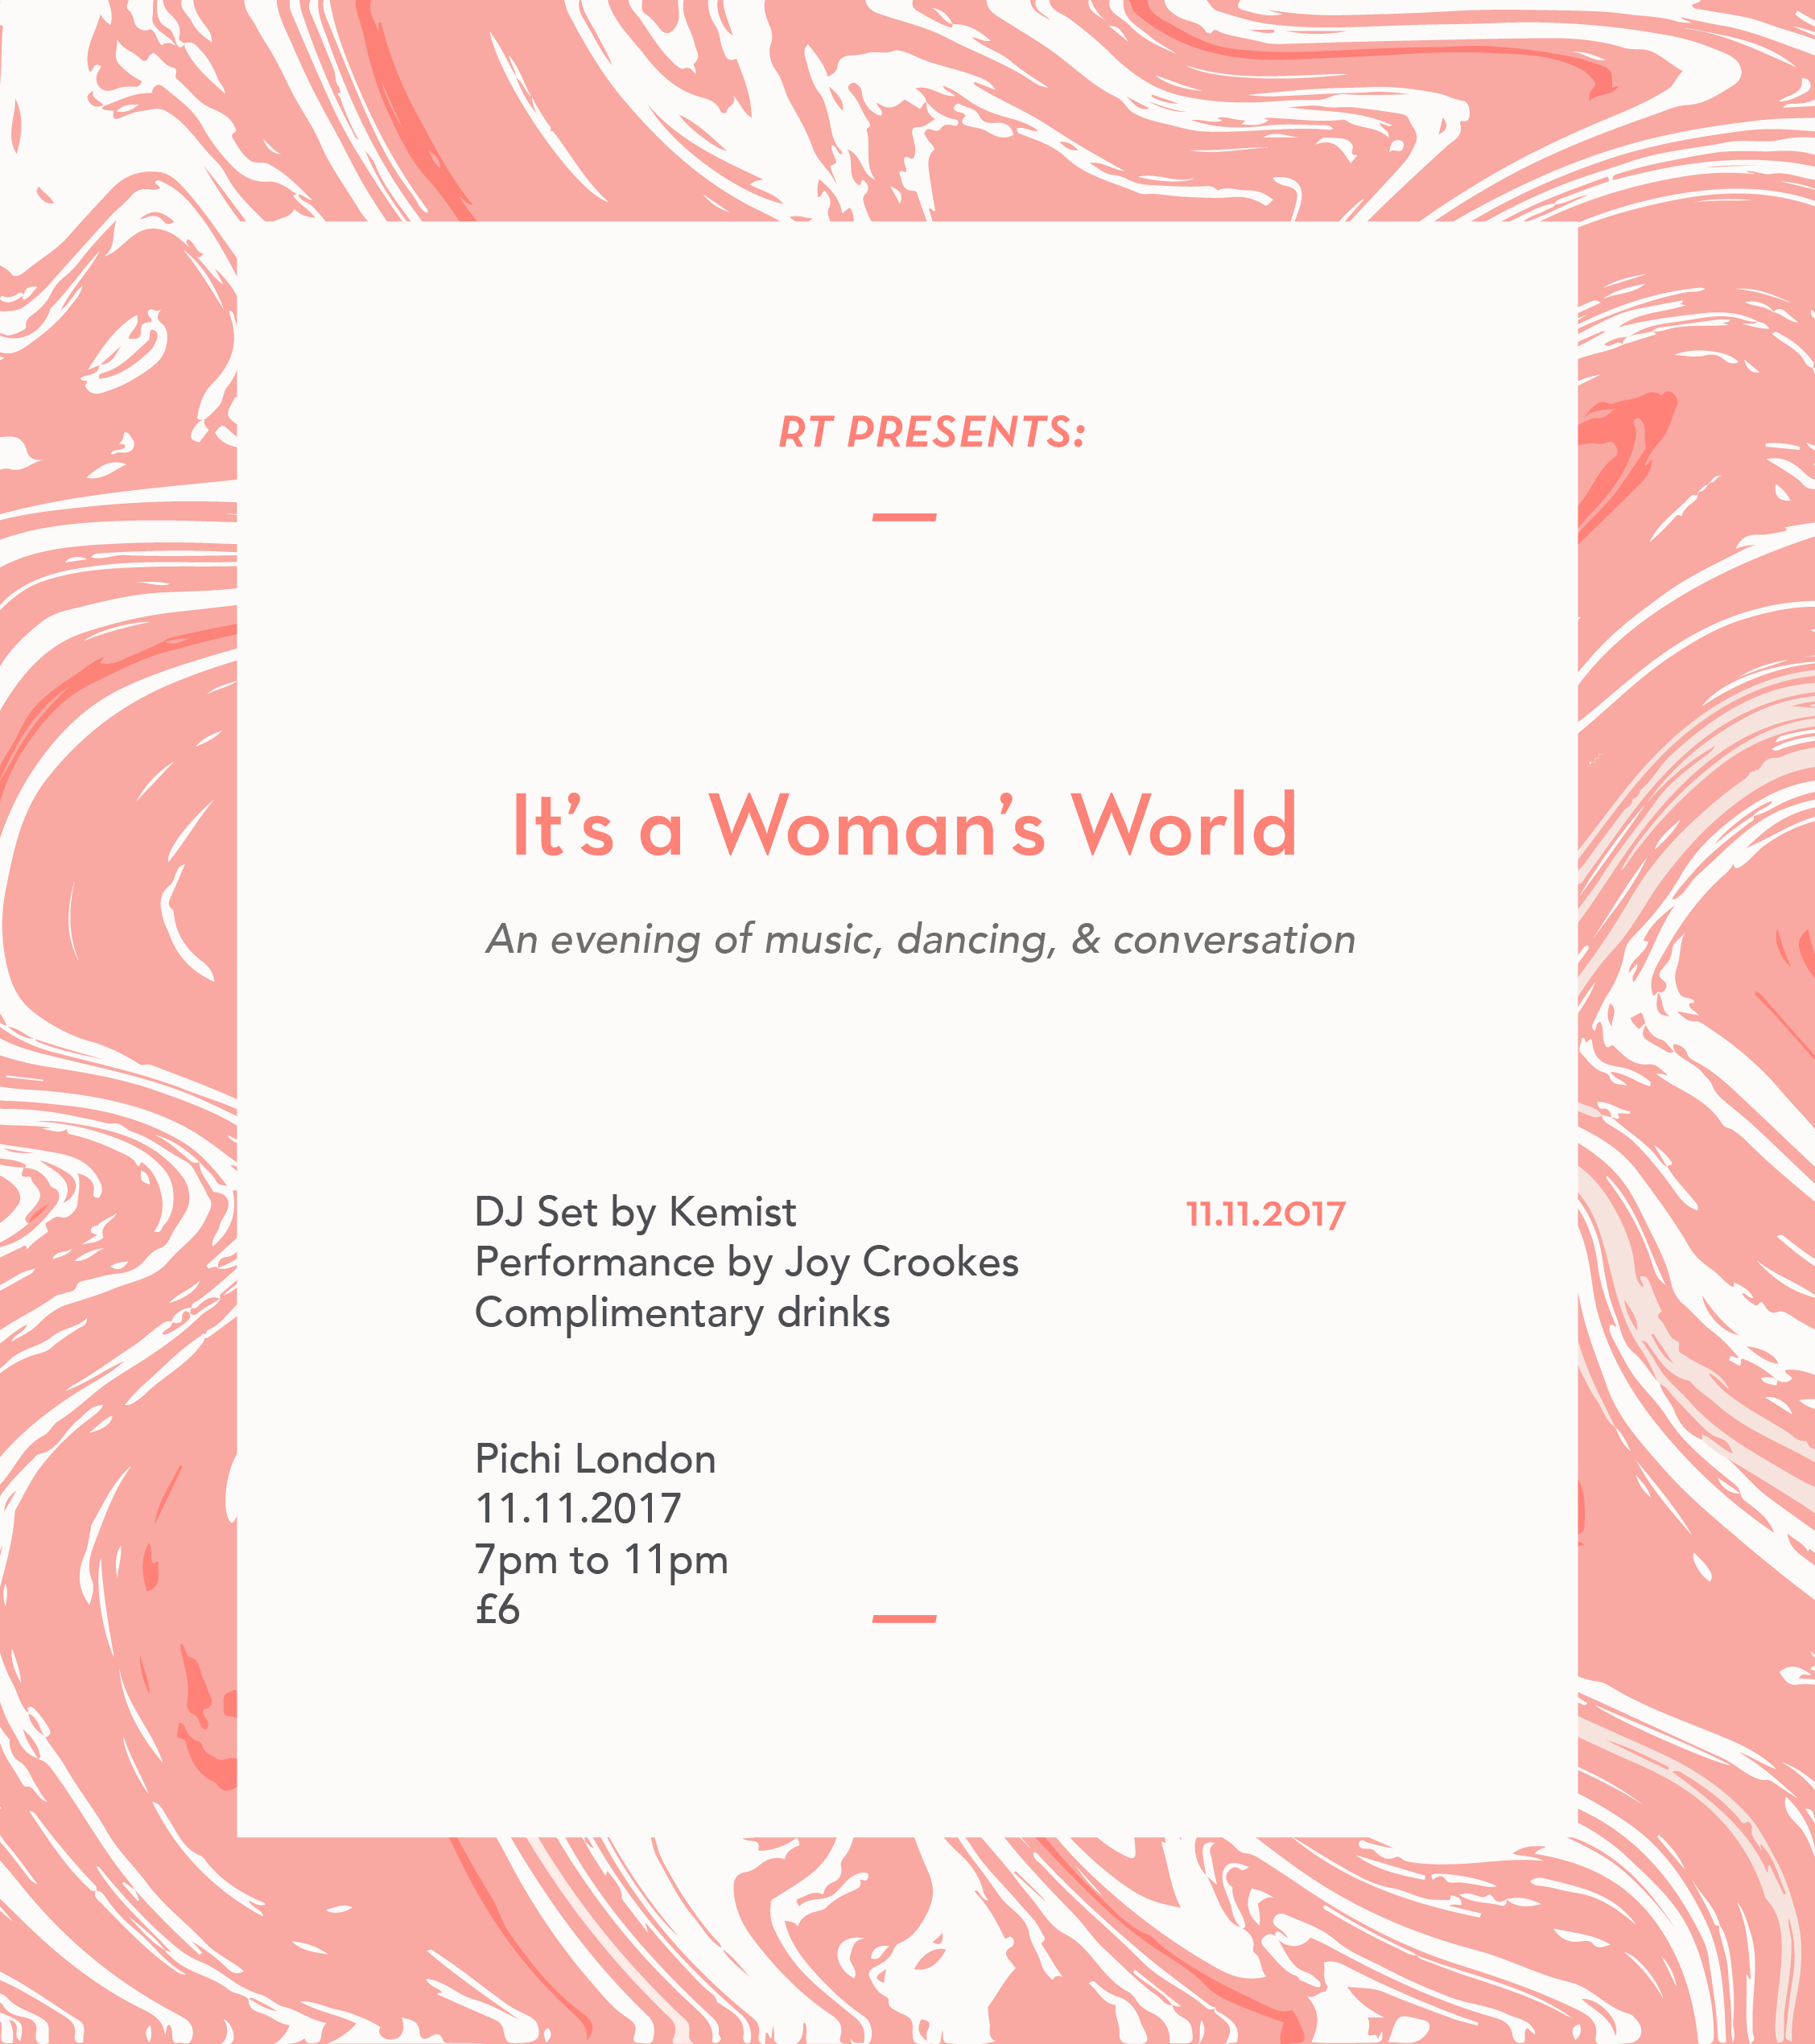 Roundtable presents: It's a Woman's World